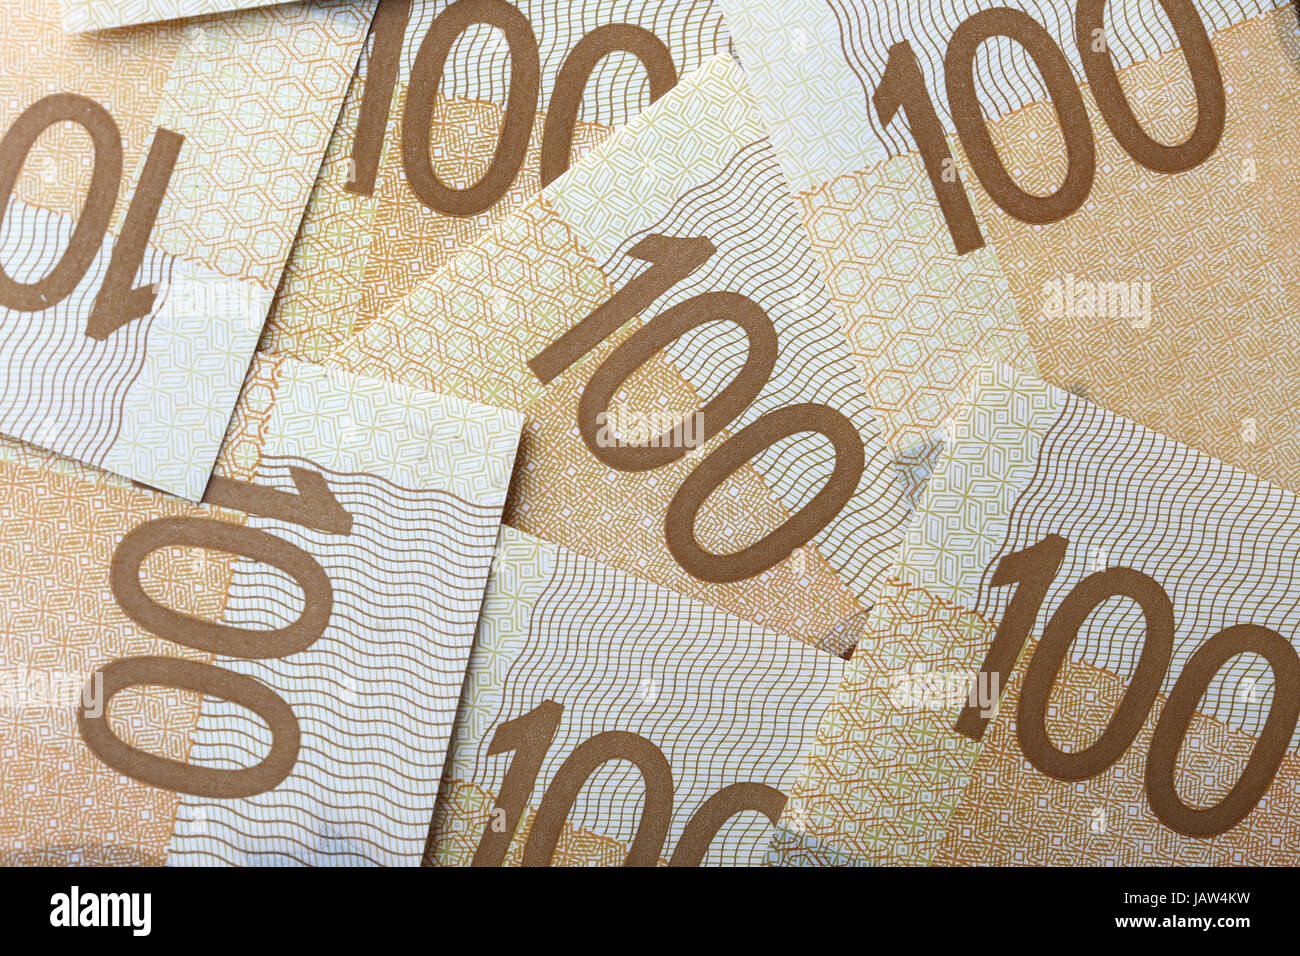 New one hundred dollar bill background - Stock Image